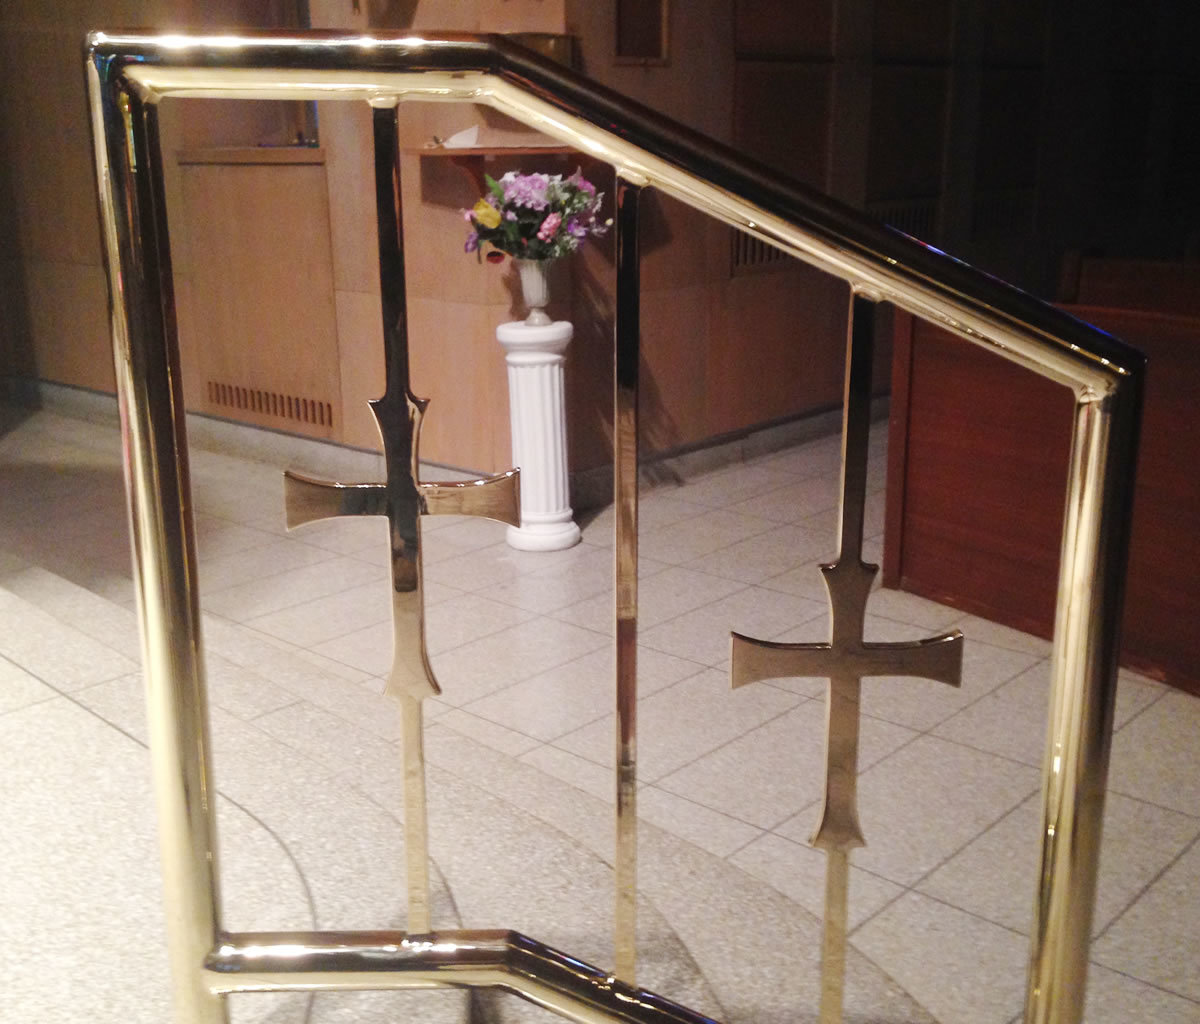 Church brass rail